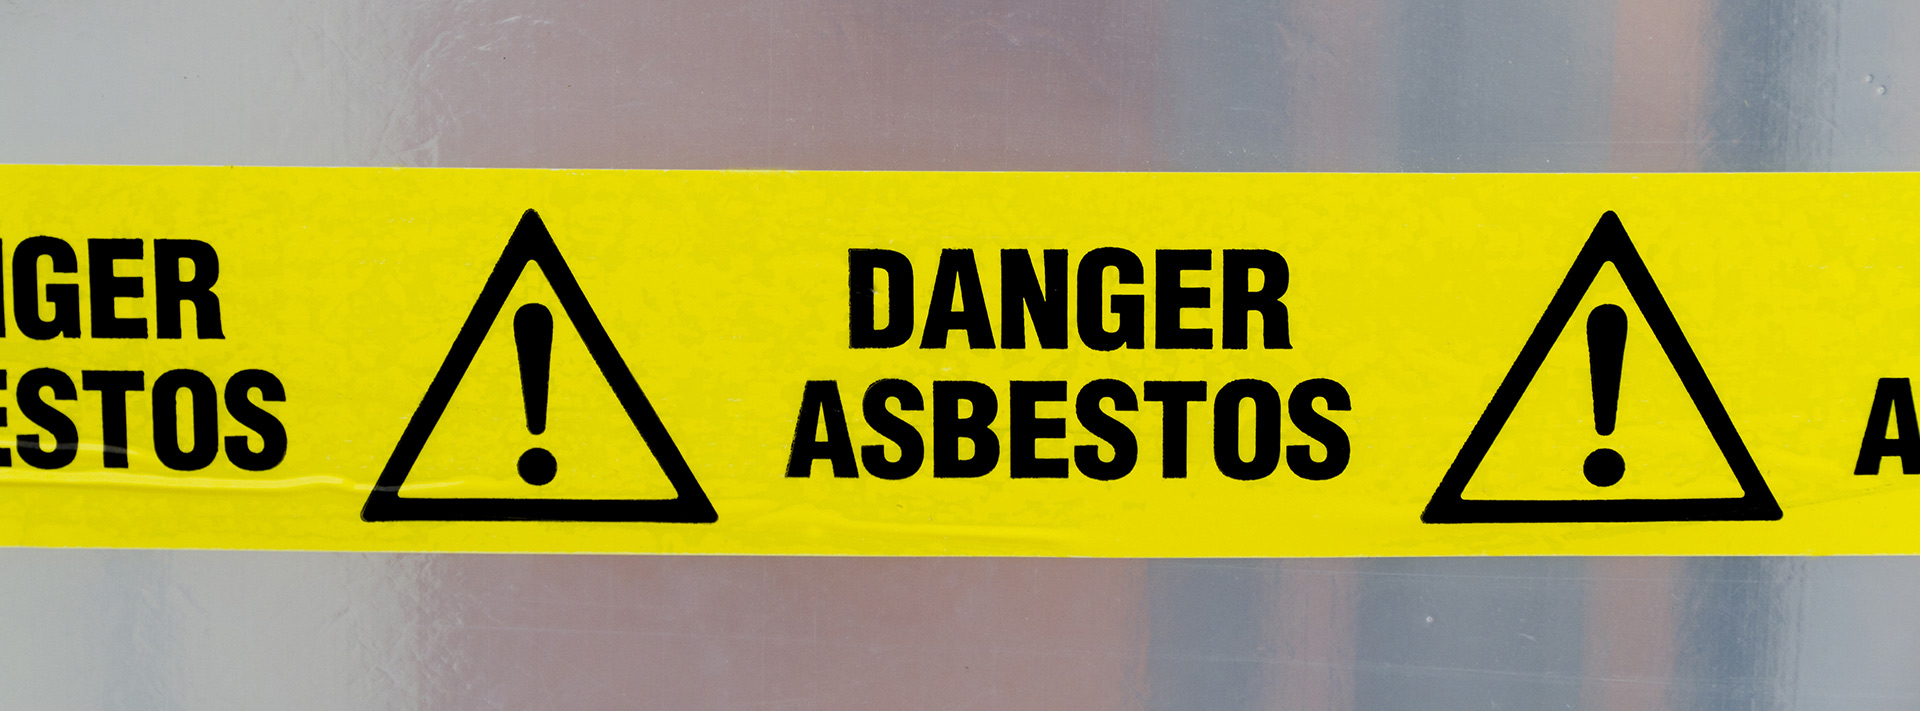 Does your property contain asbestos?